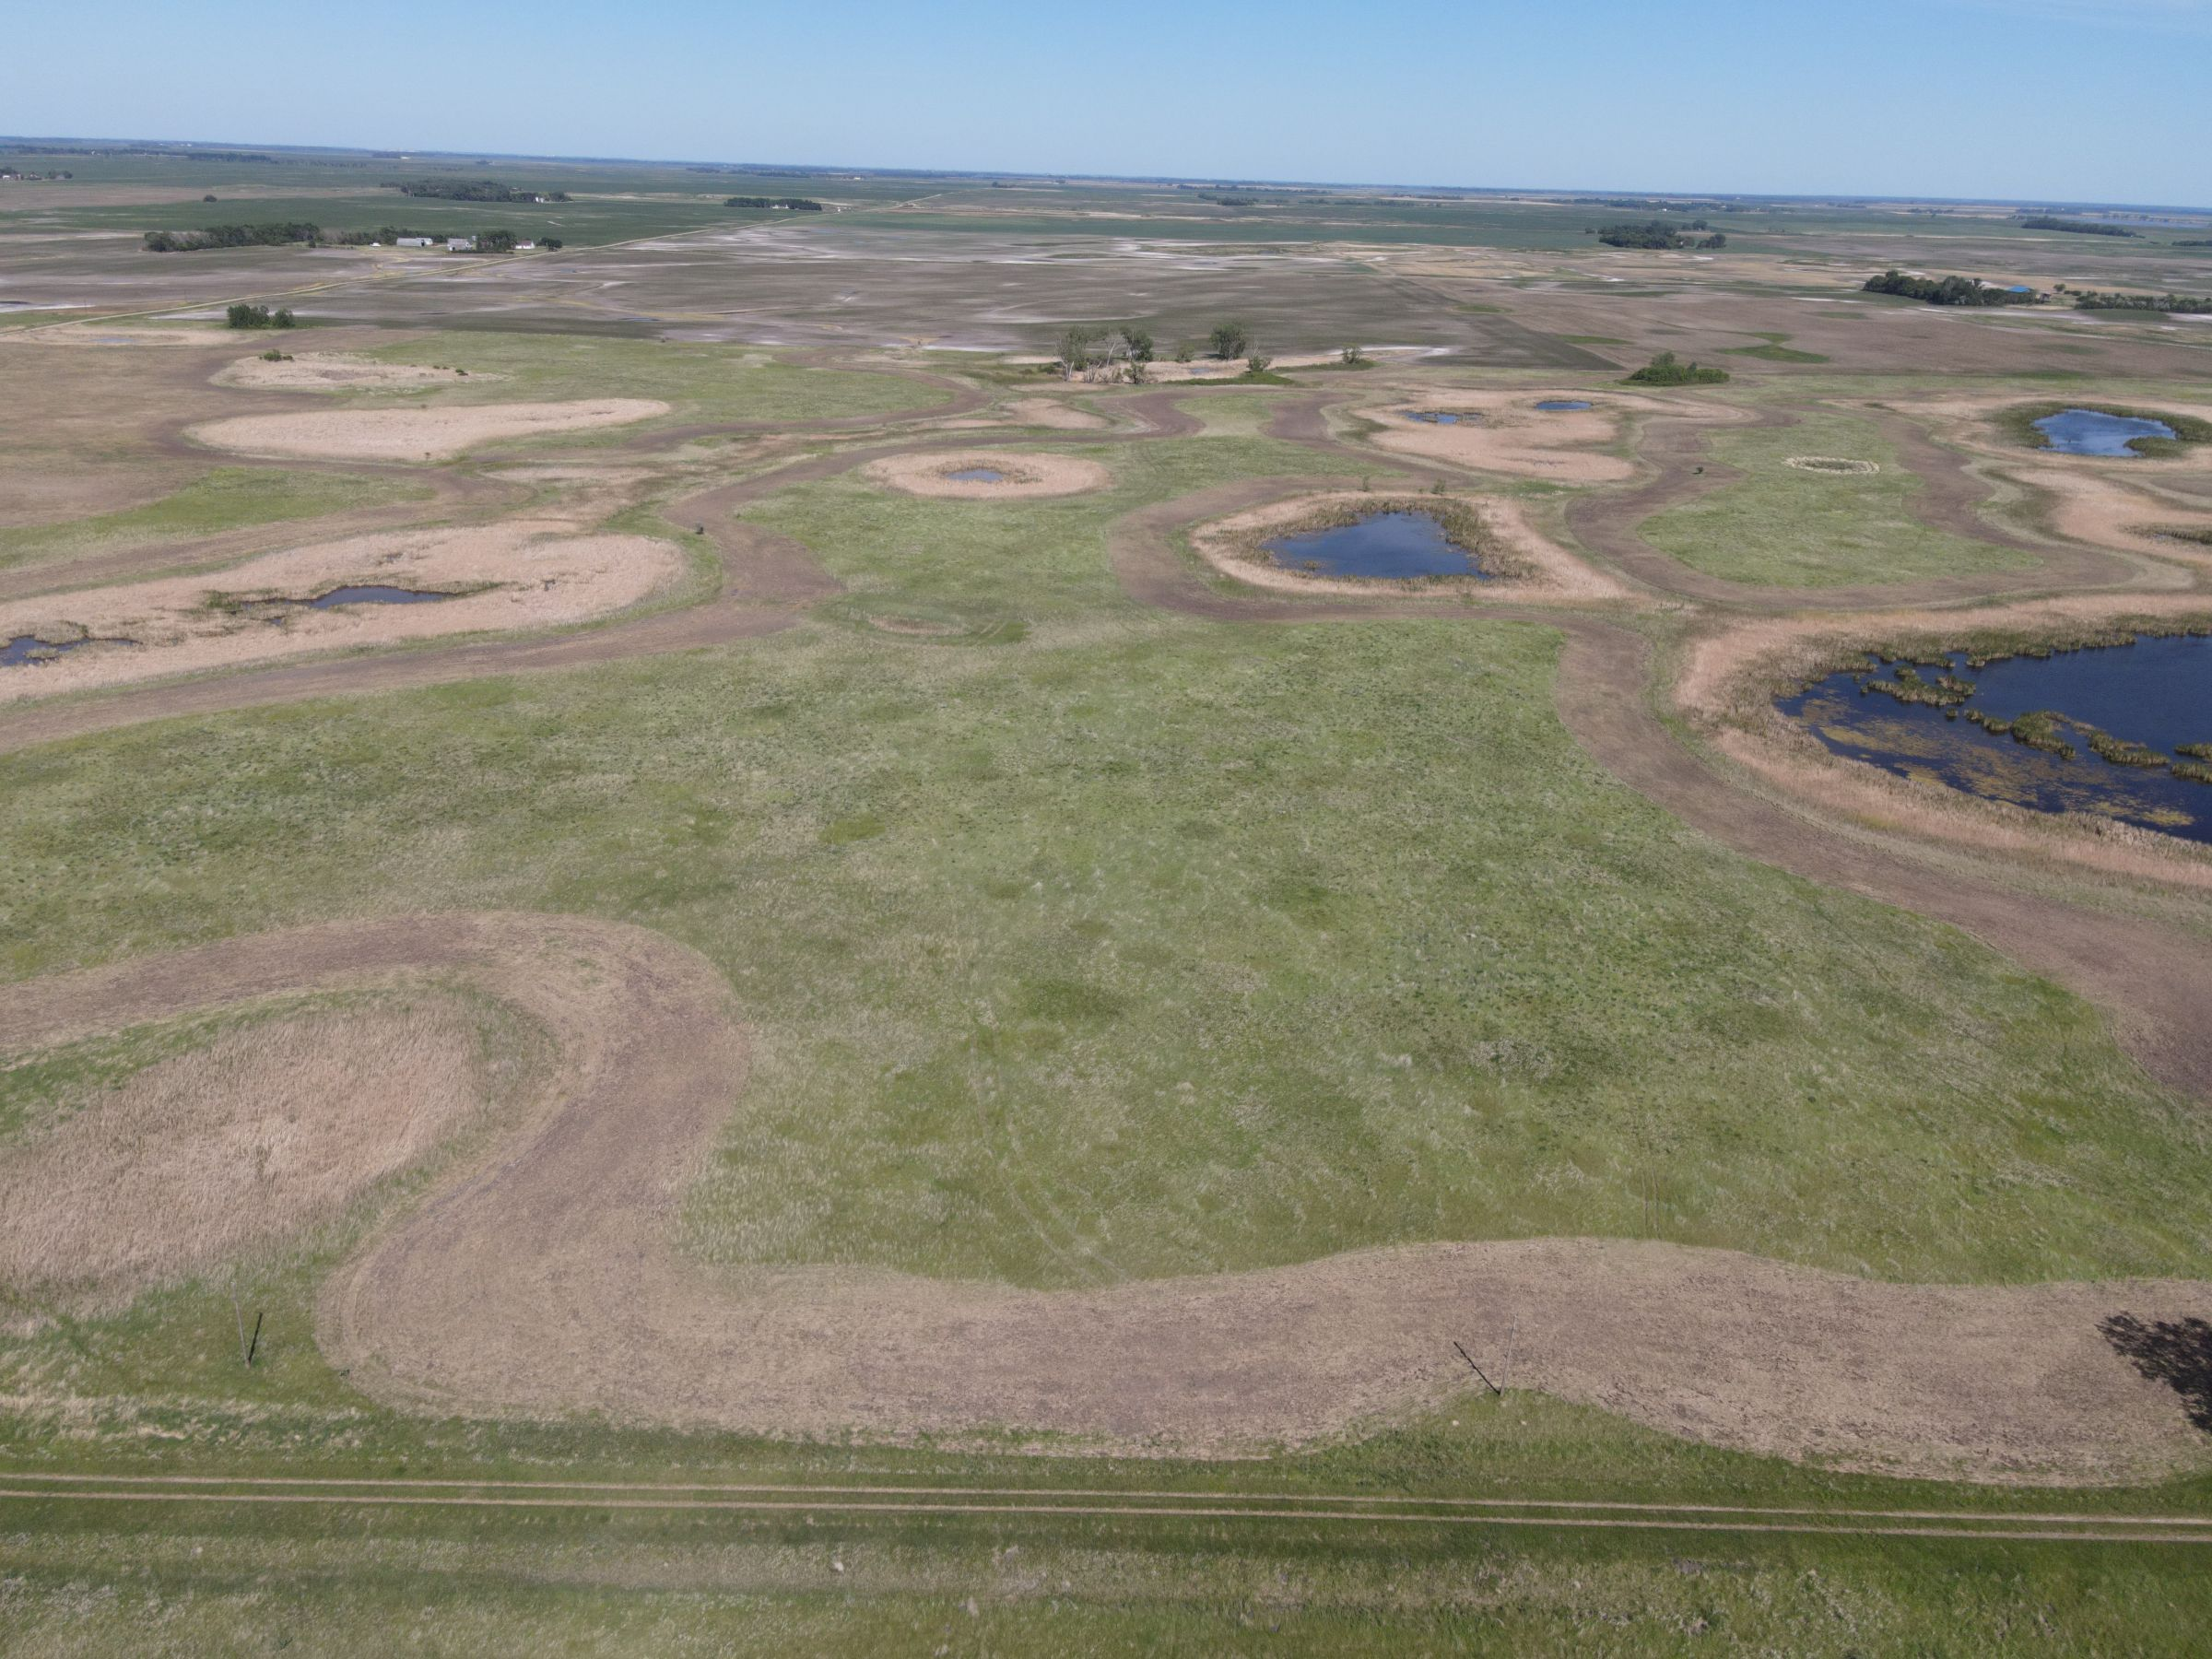 auctions-cass-county-north-dakota-320-acres-listing-number-15590-3-2021-06-22-191133.JPG